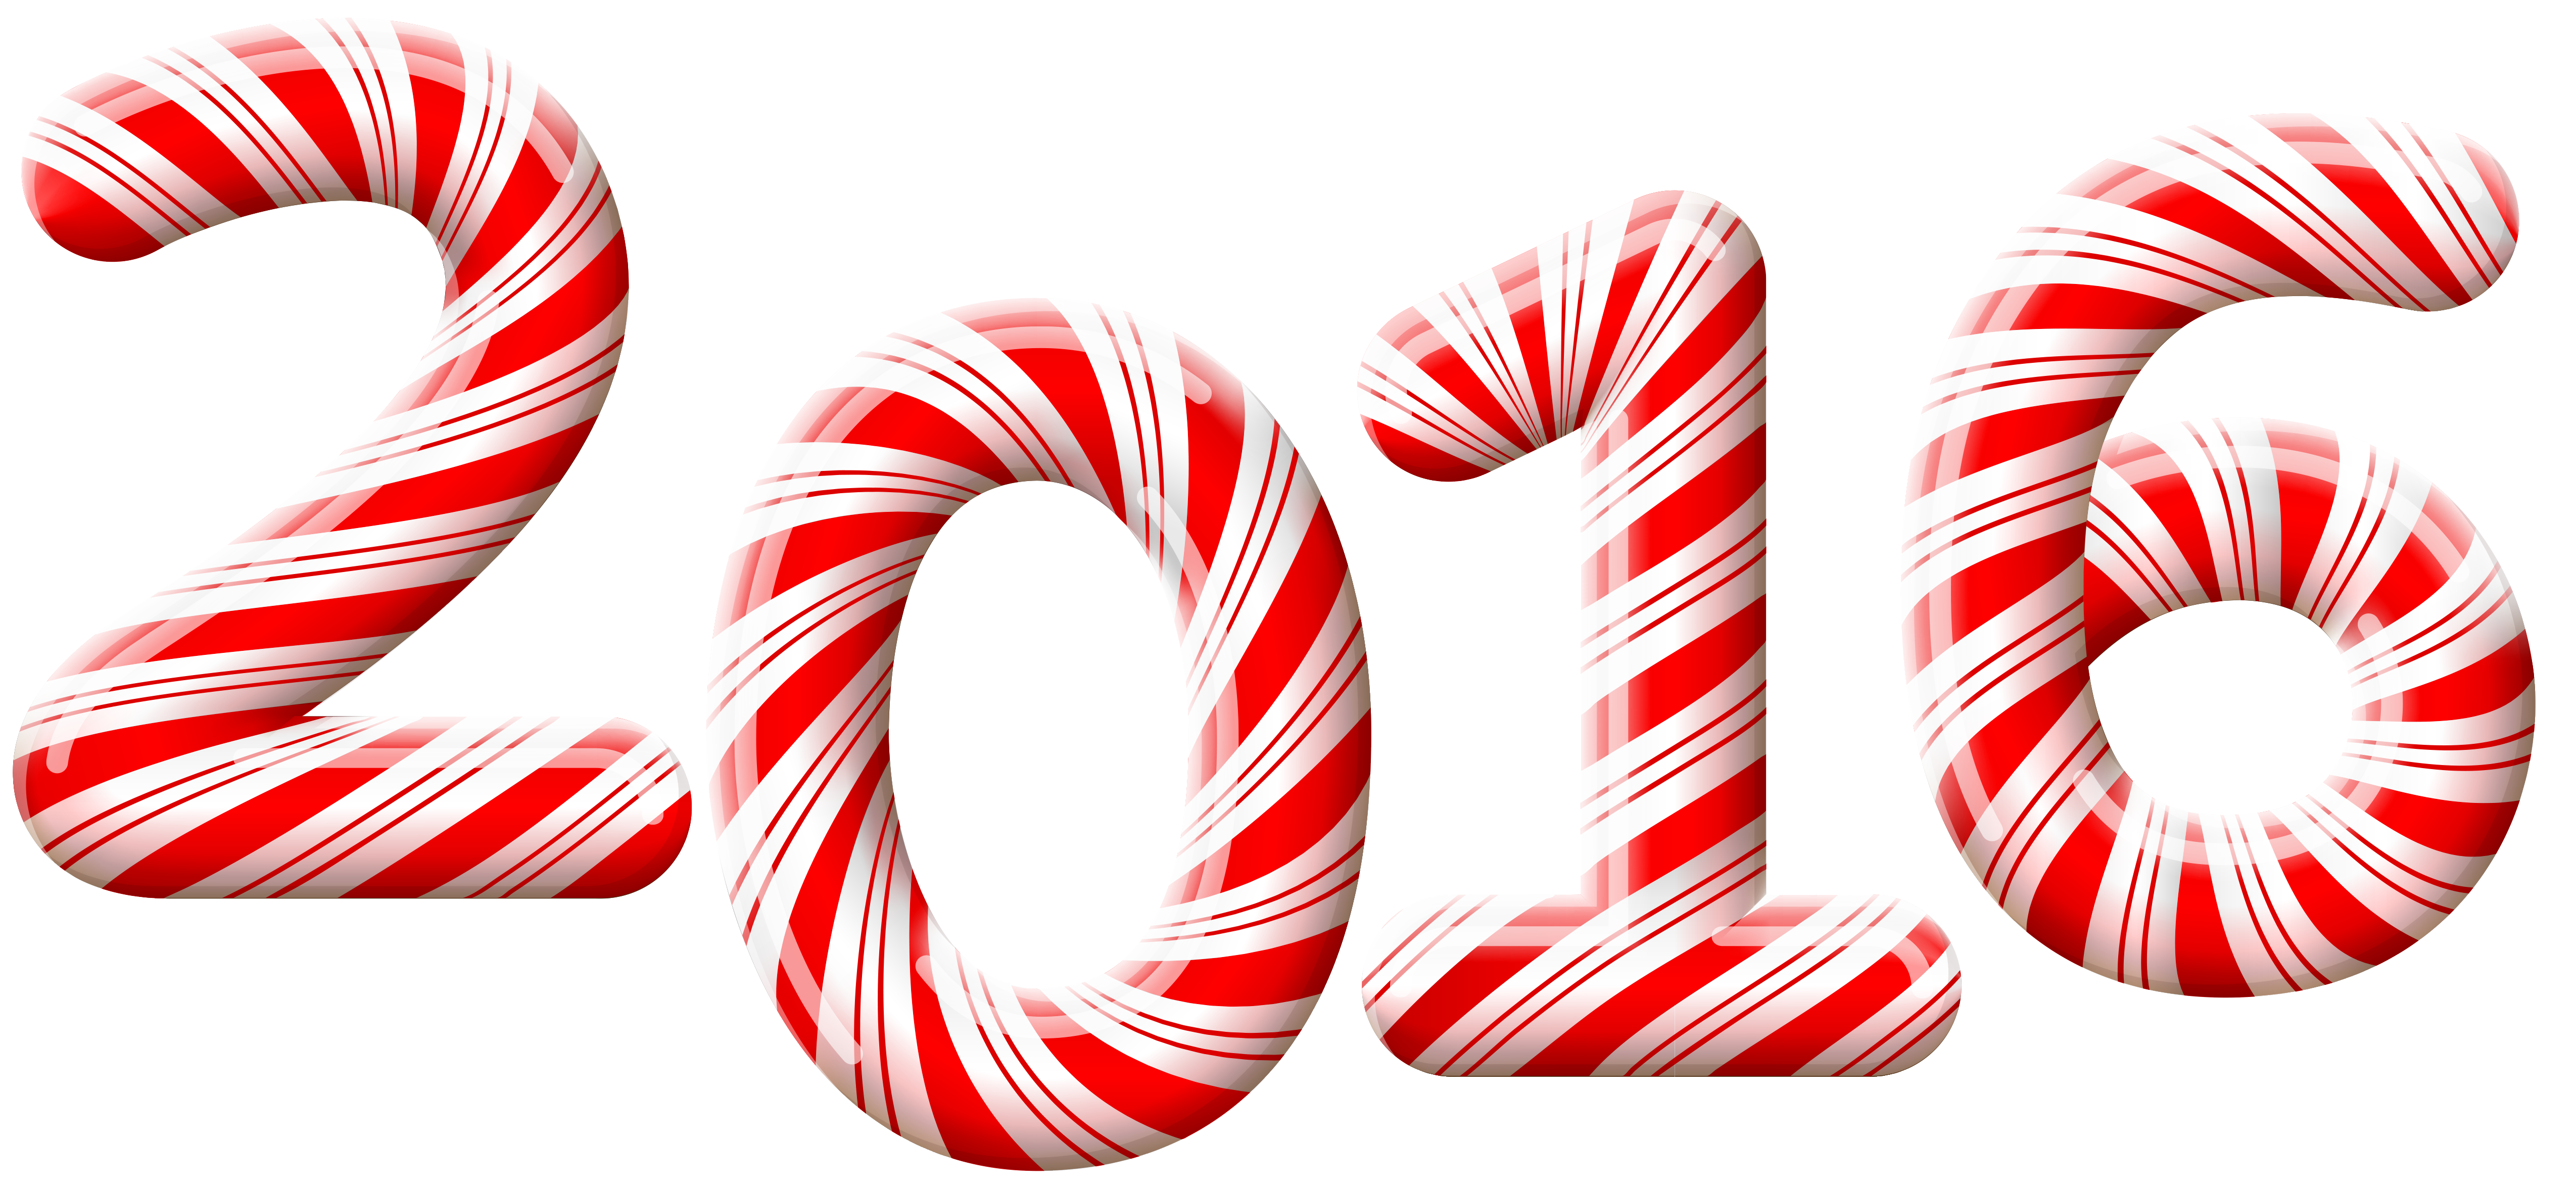 candy cane png. 2016 clipart clipart black and white download